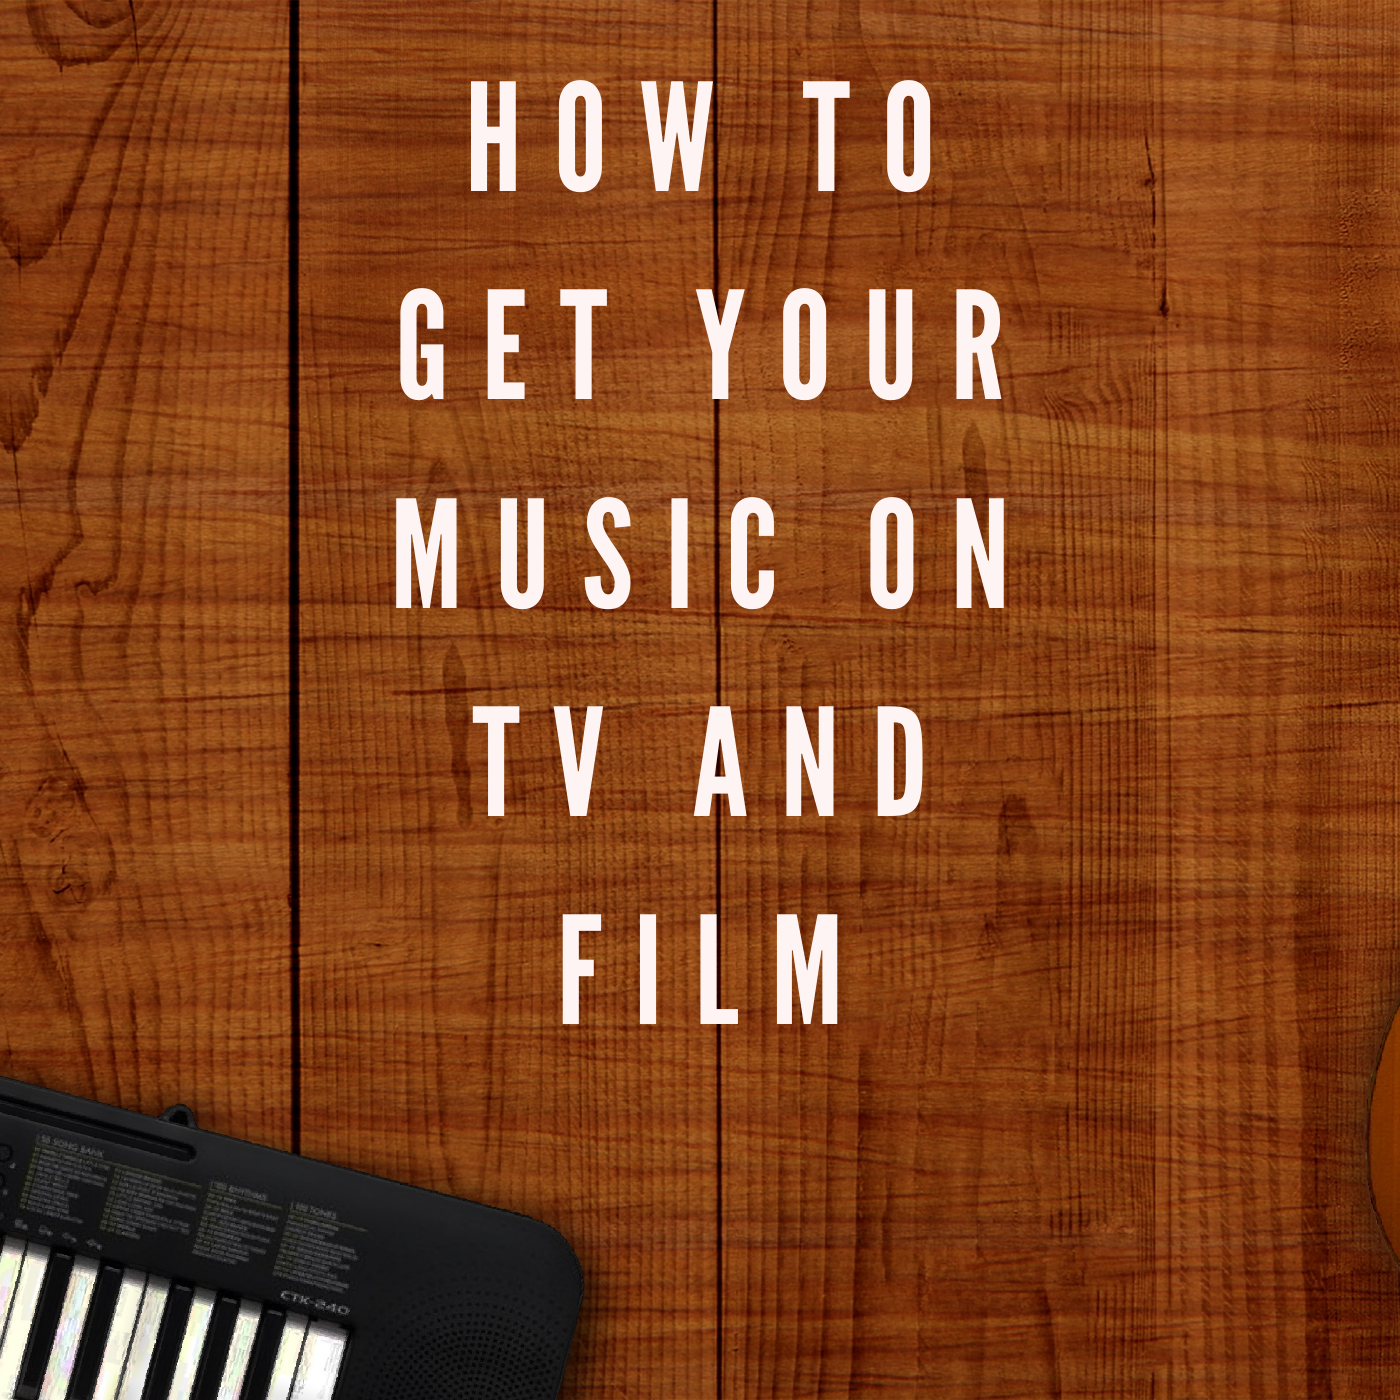 How to get your music on Tv/Film